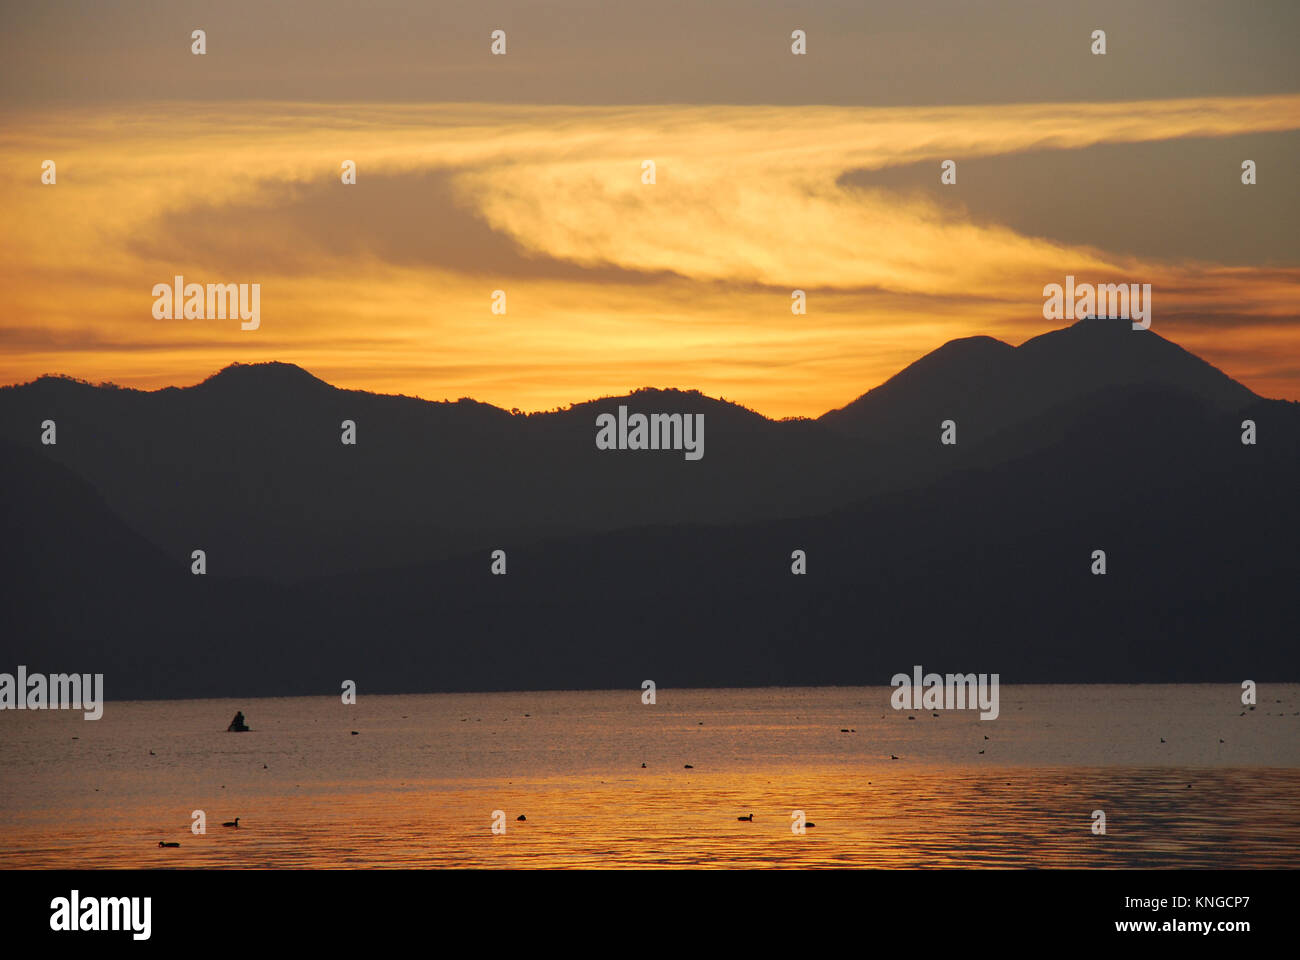 Sunrise at Lake Atitlan in Guatemala which is surrounded by high cliffs and overlooked by three volcanoes - Stock Image